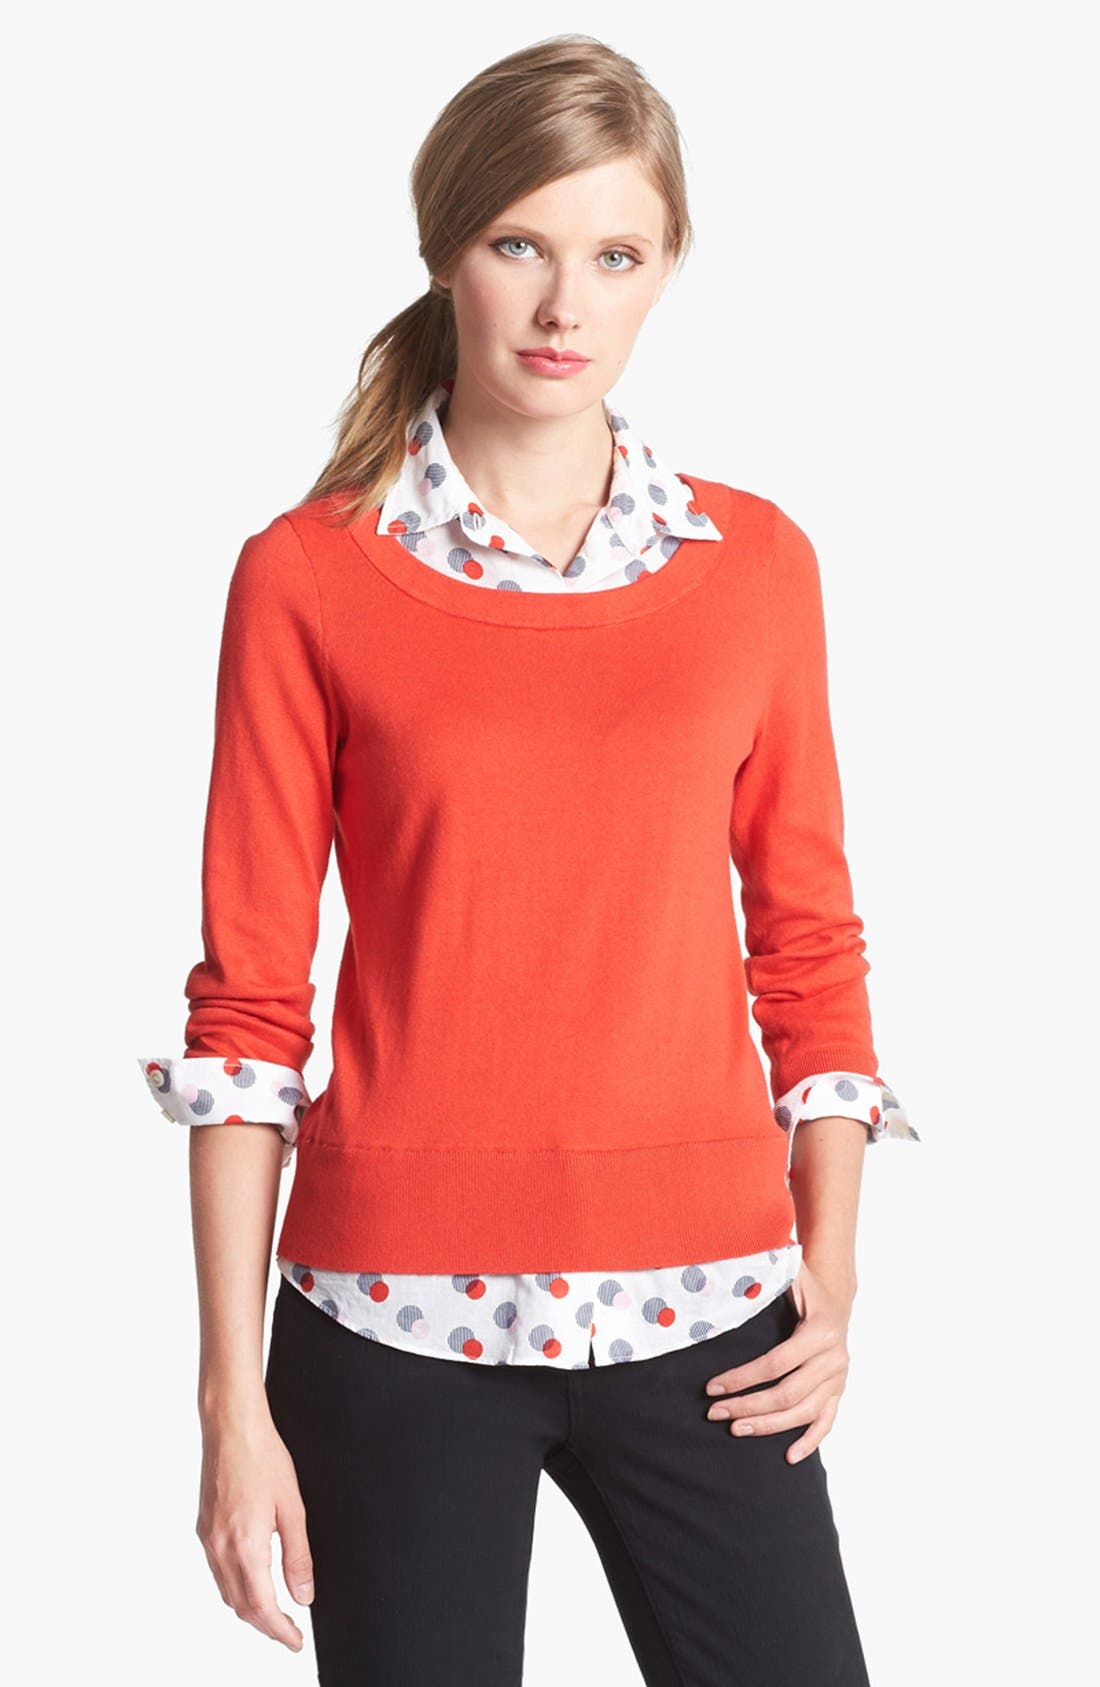 Alternate Image 1 Selected - kate spade new york 'yardley' layered sweater